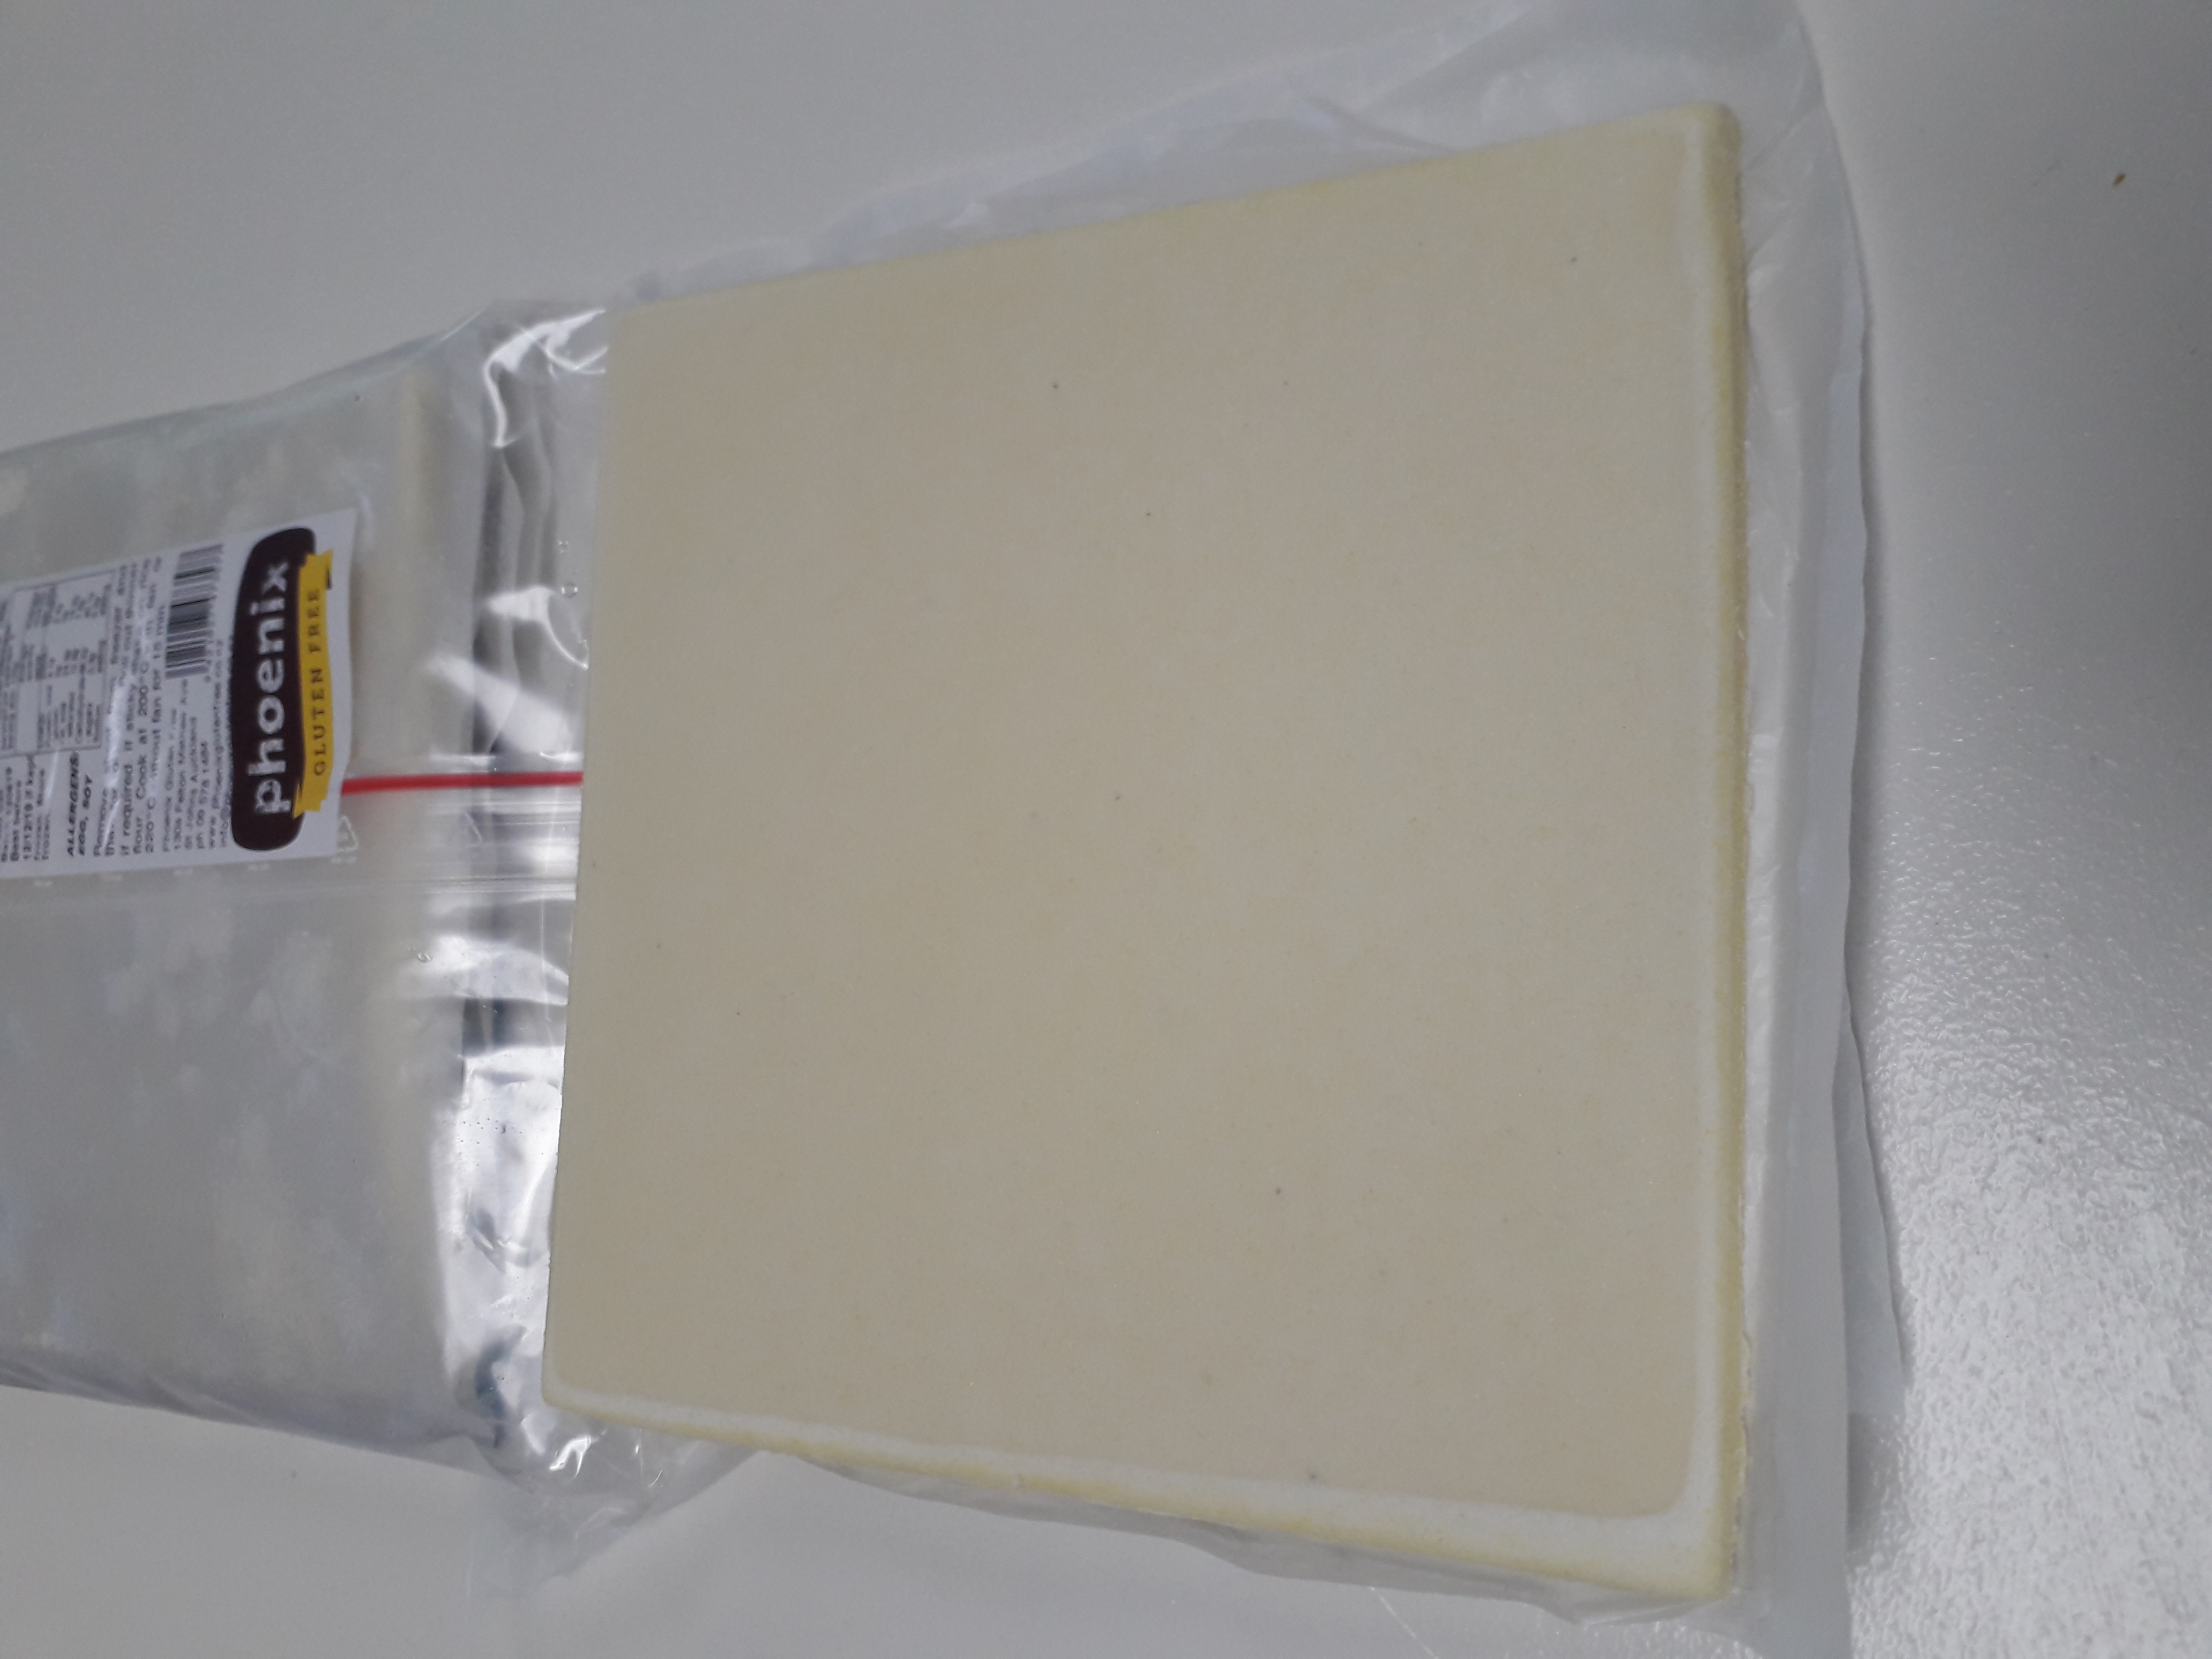 Pastry Sheets, the easy convenient way to bake are now available